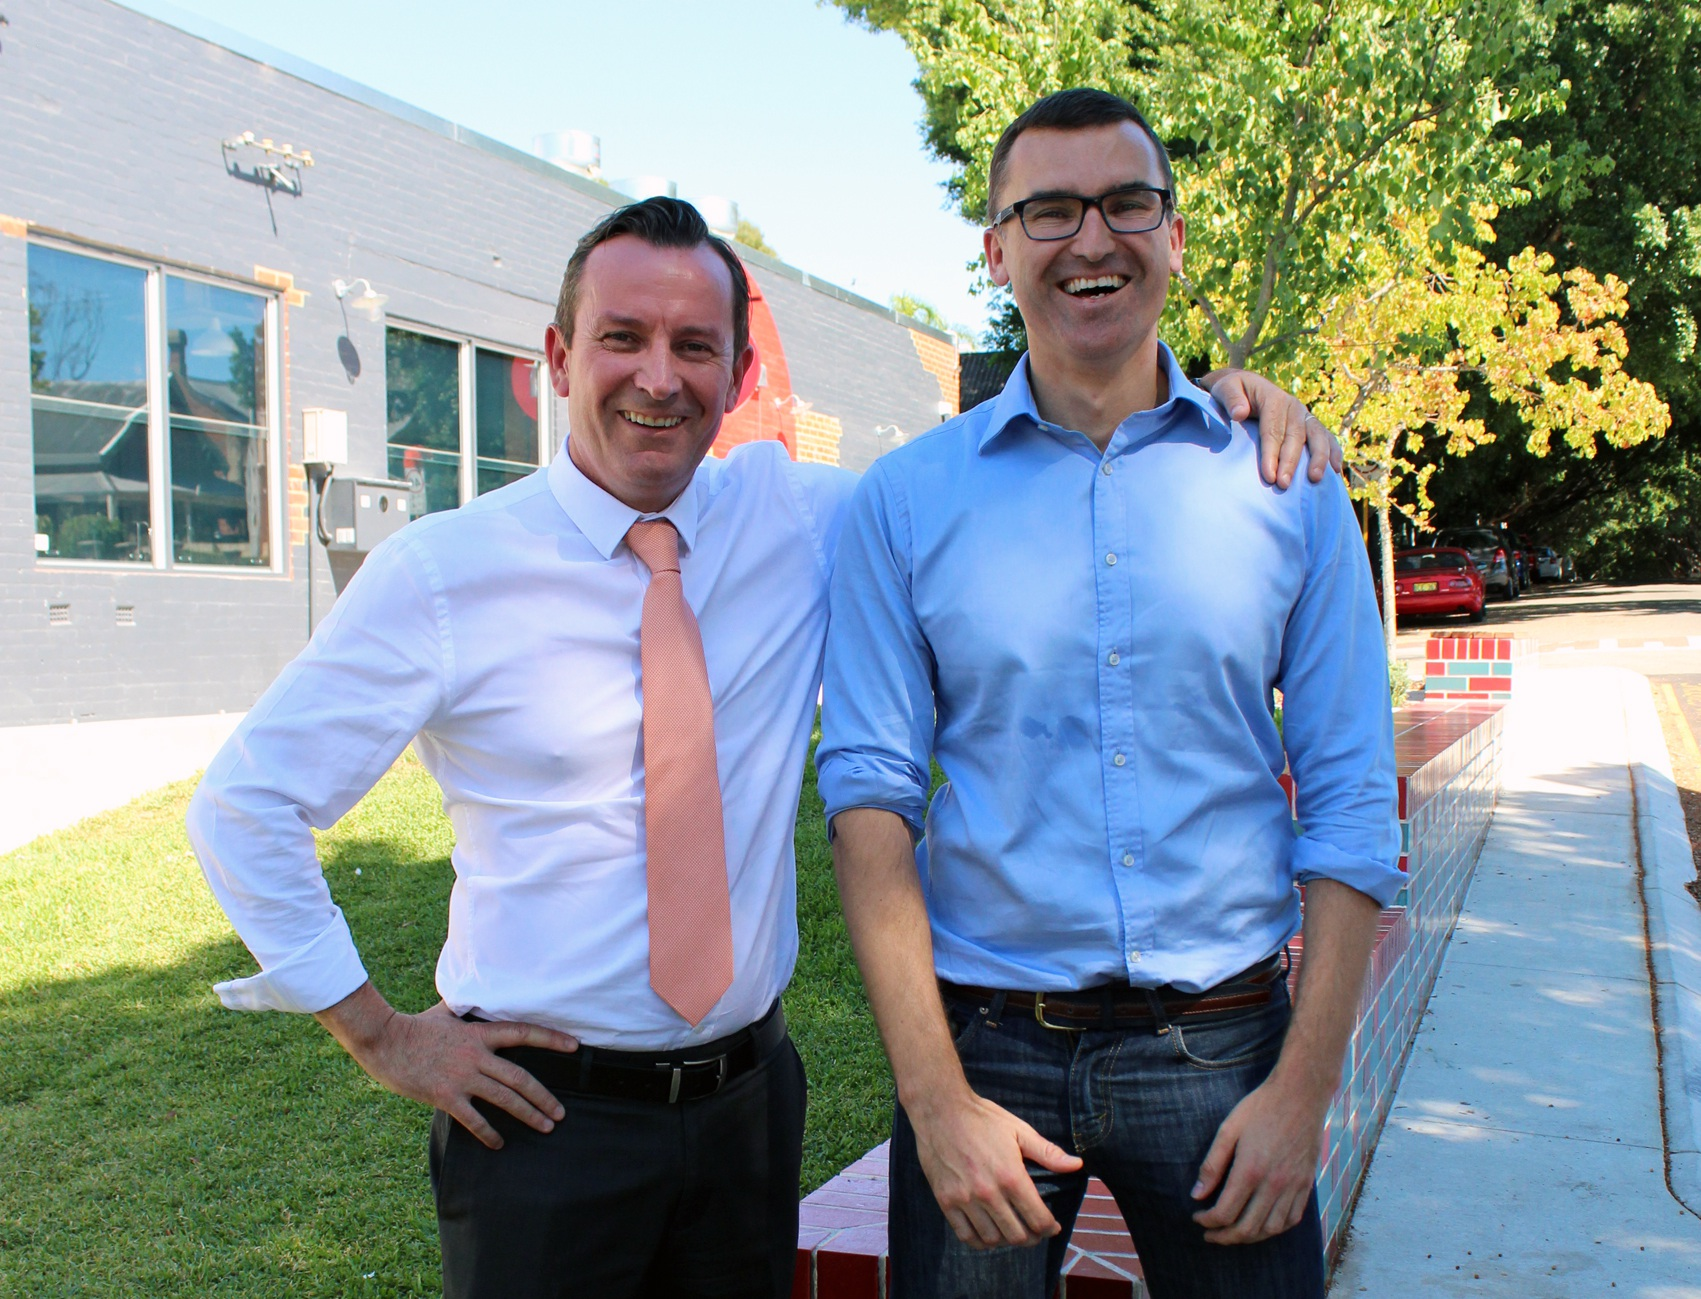 WA Opposition leader Mark McGowan with Labor candidate for Perth John Carey. Photo: Rosanna Candler